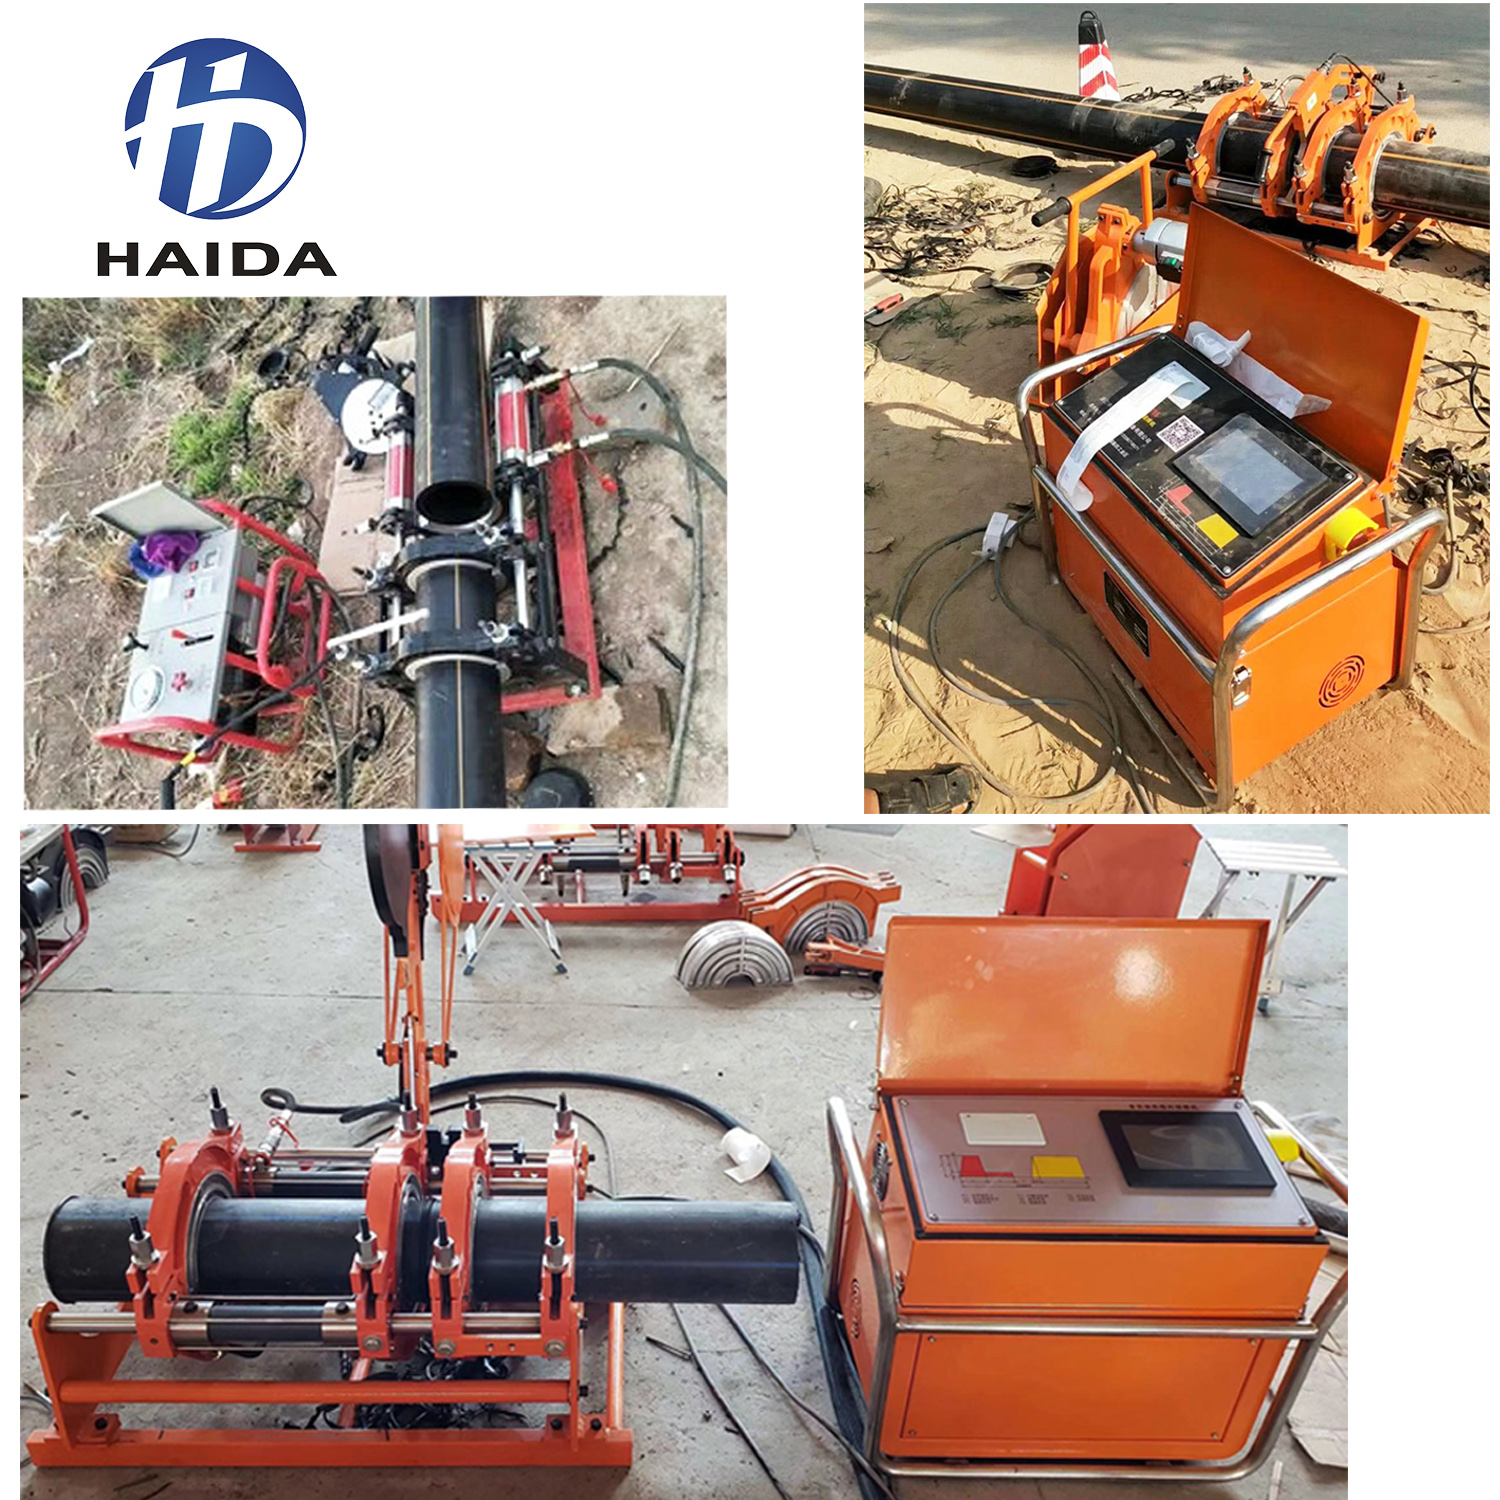 Our company is specialized in Manufacturing & Researching Plastic Pipe Butt Fusion Welding machine